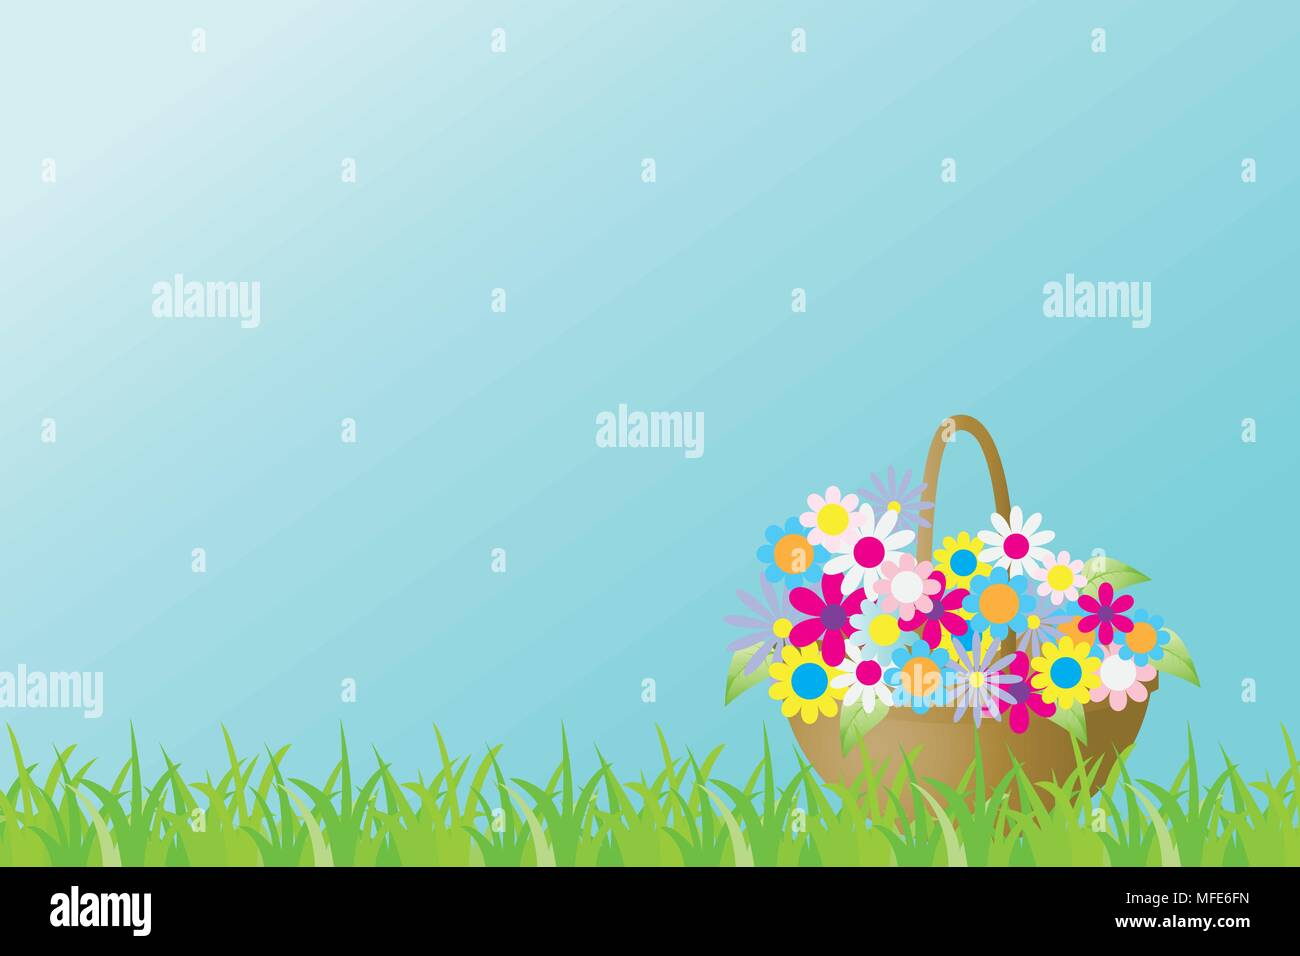 Vector illustration with a basket of brighte spring flowers of a green grass - Stock Vector